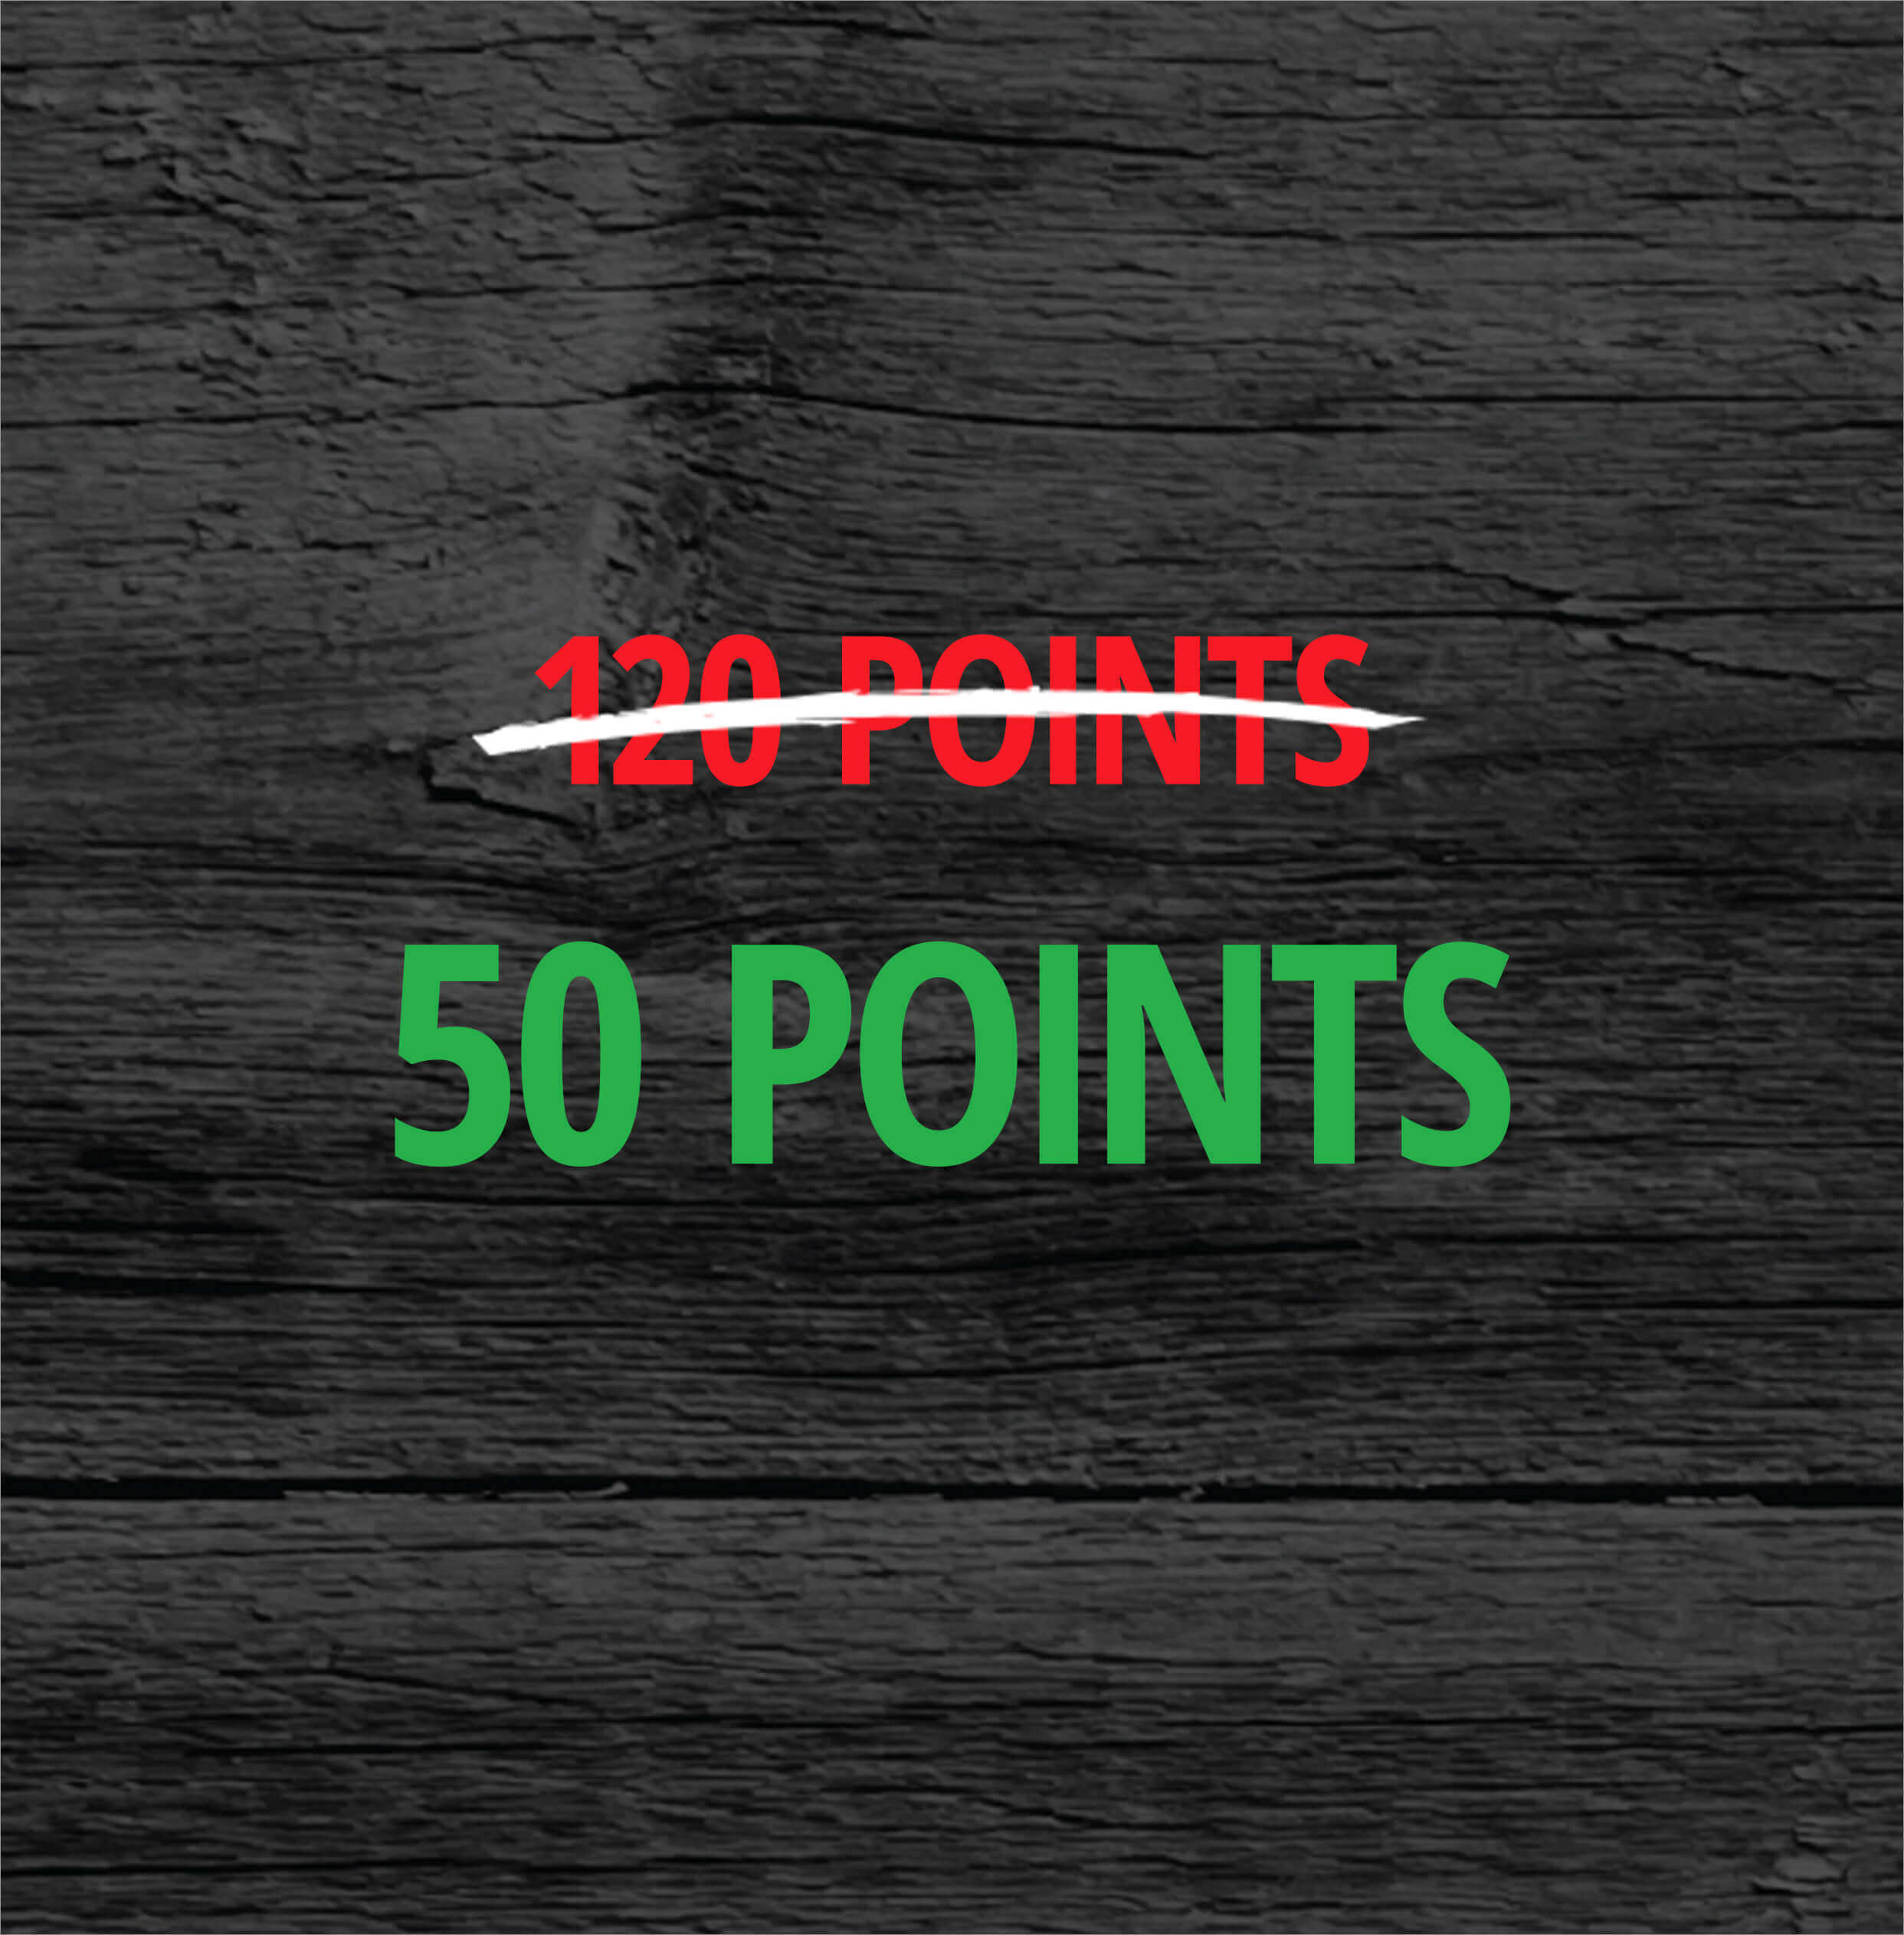 120 Points On Sale For 50 Points